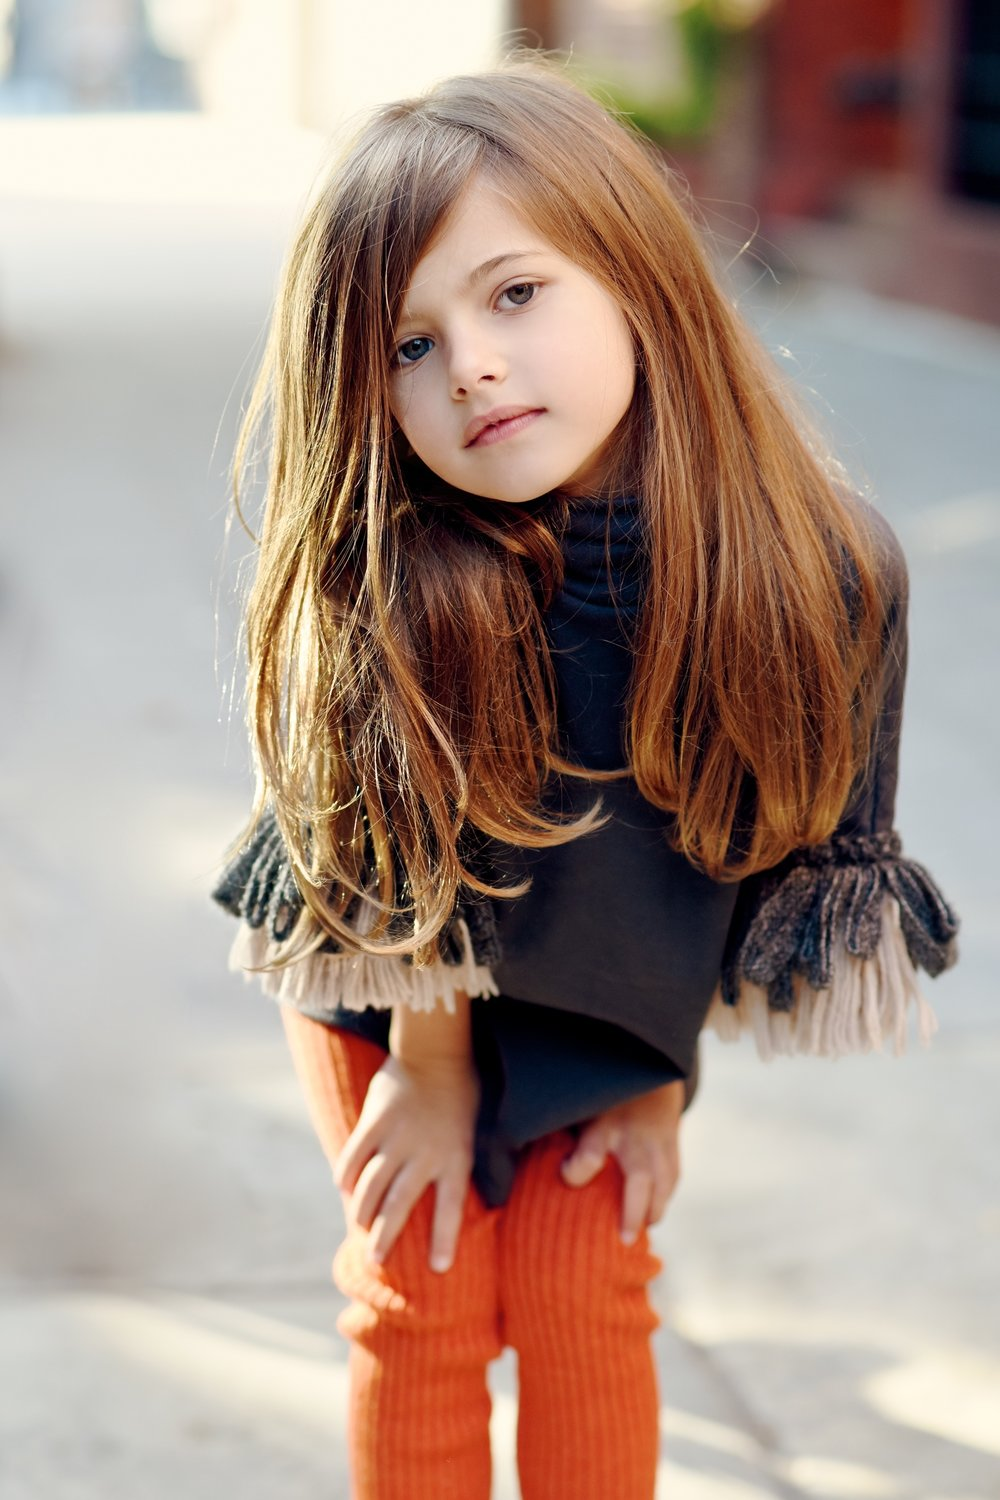 Enfant+Street+Style+by+Gina+Kim+Photography-26.jpeg